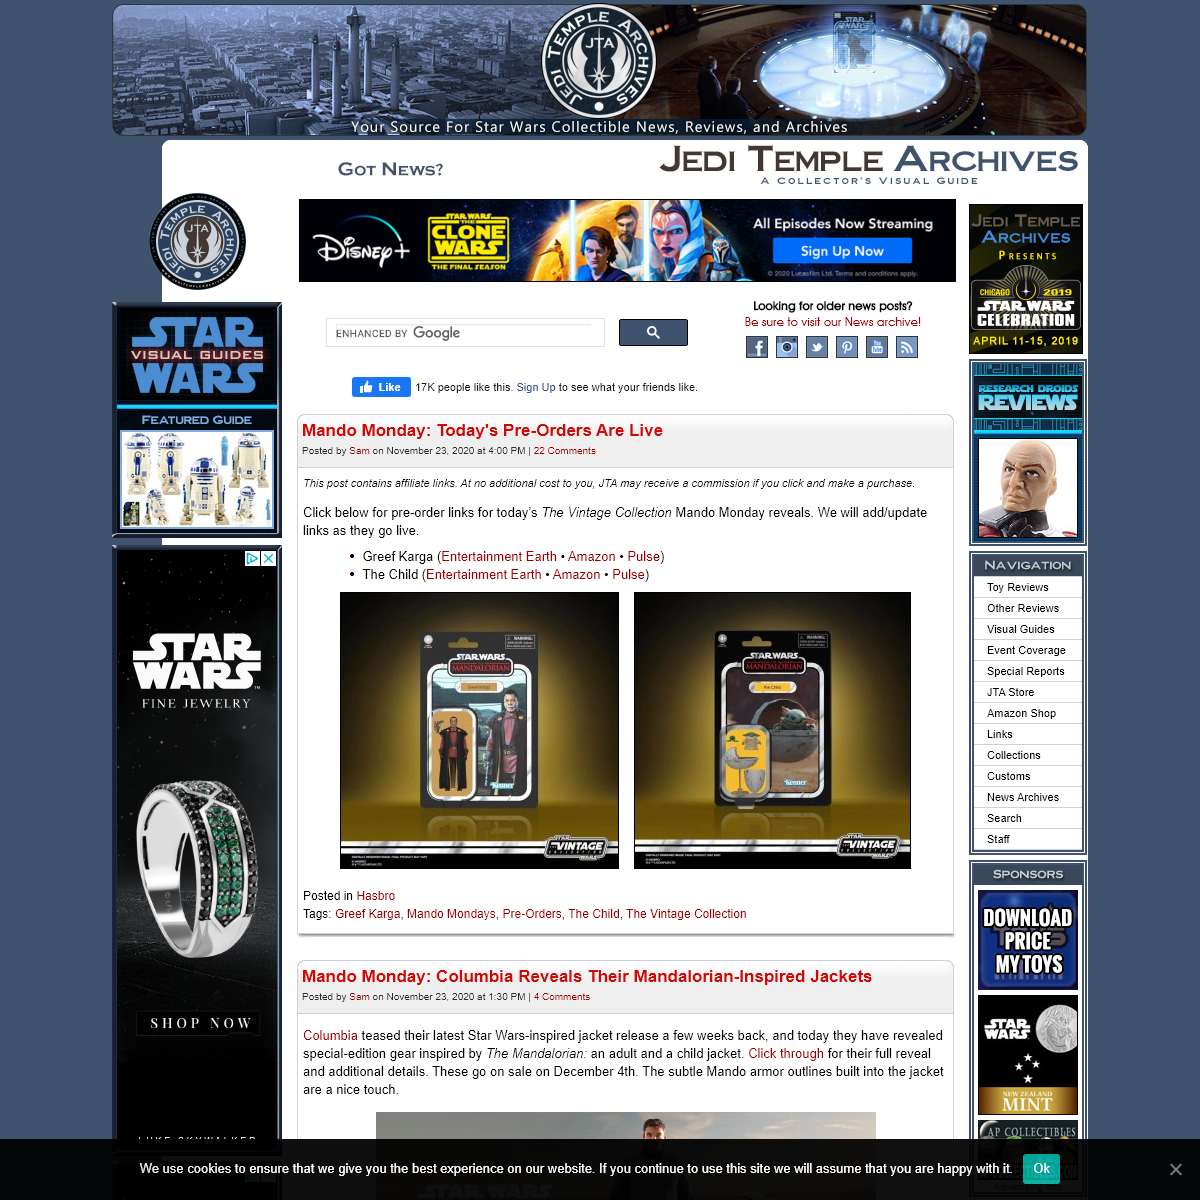 JediTempleArchives.com - A Star Wars Toys & Collectibles Resource; News, Visual Guides, and Reviews for Collectors